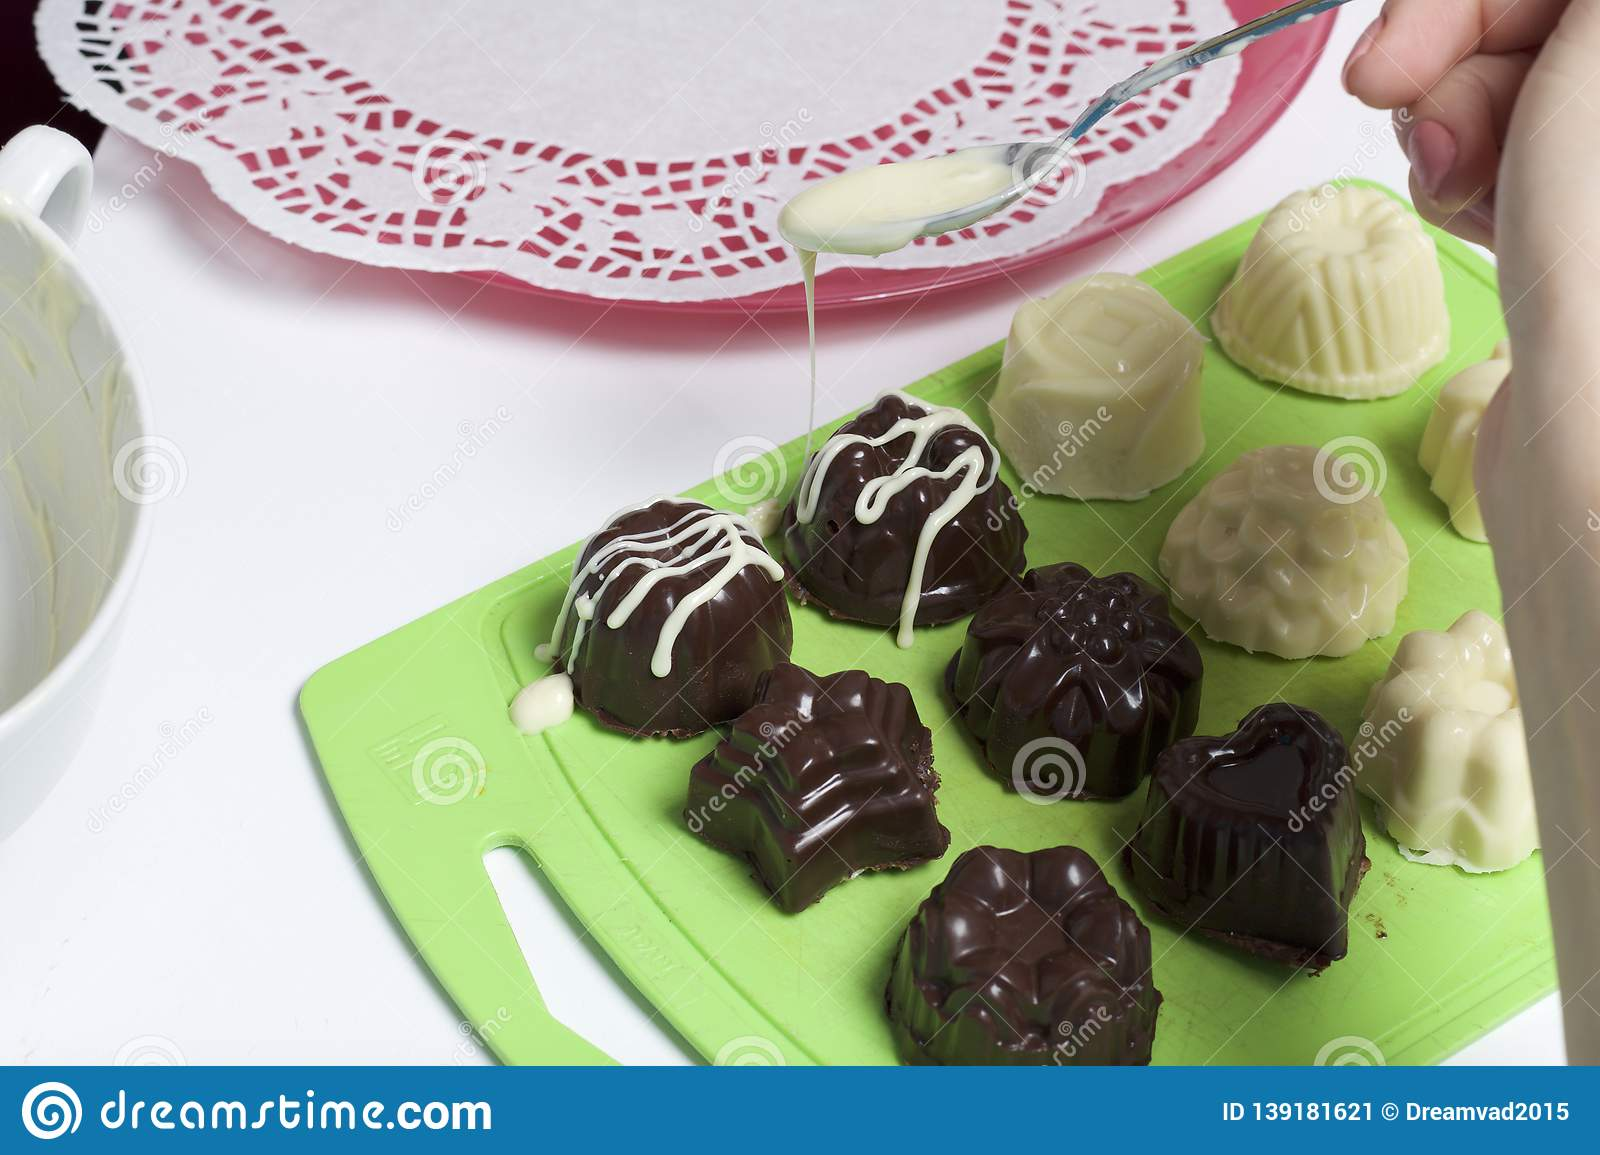 Cooking sweets with coconut and condensed milk. In a glaze of white and black chocolate